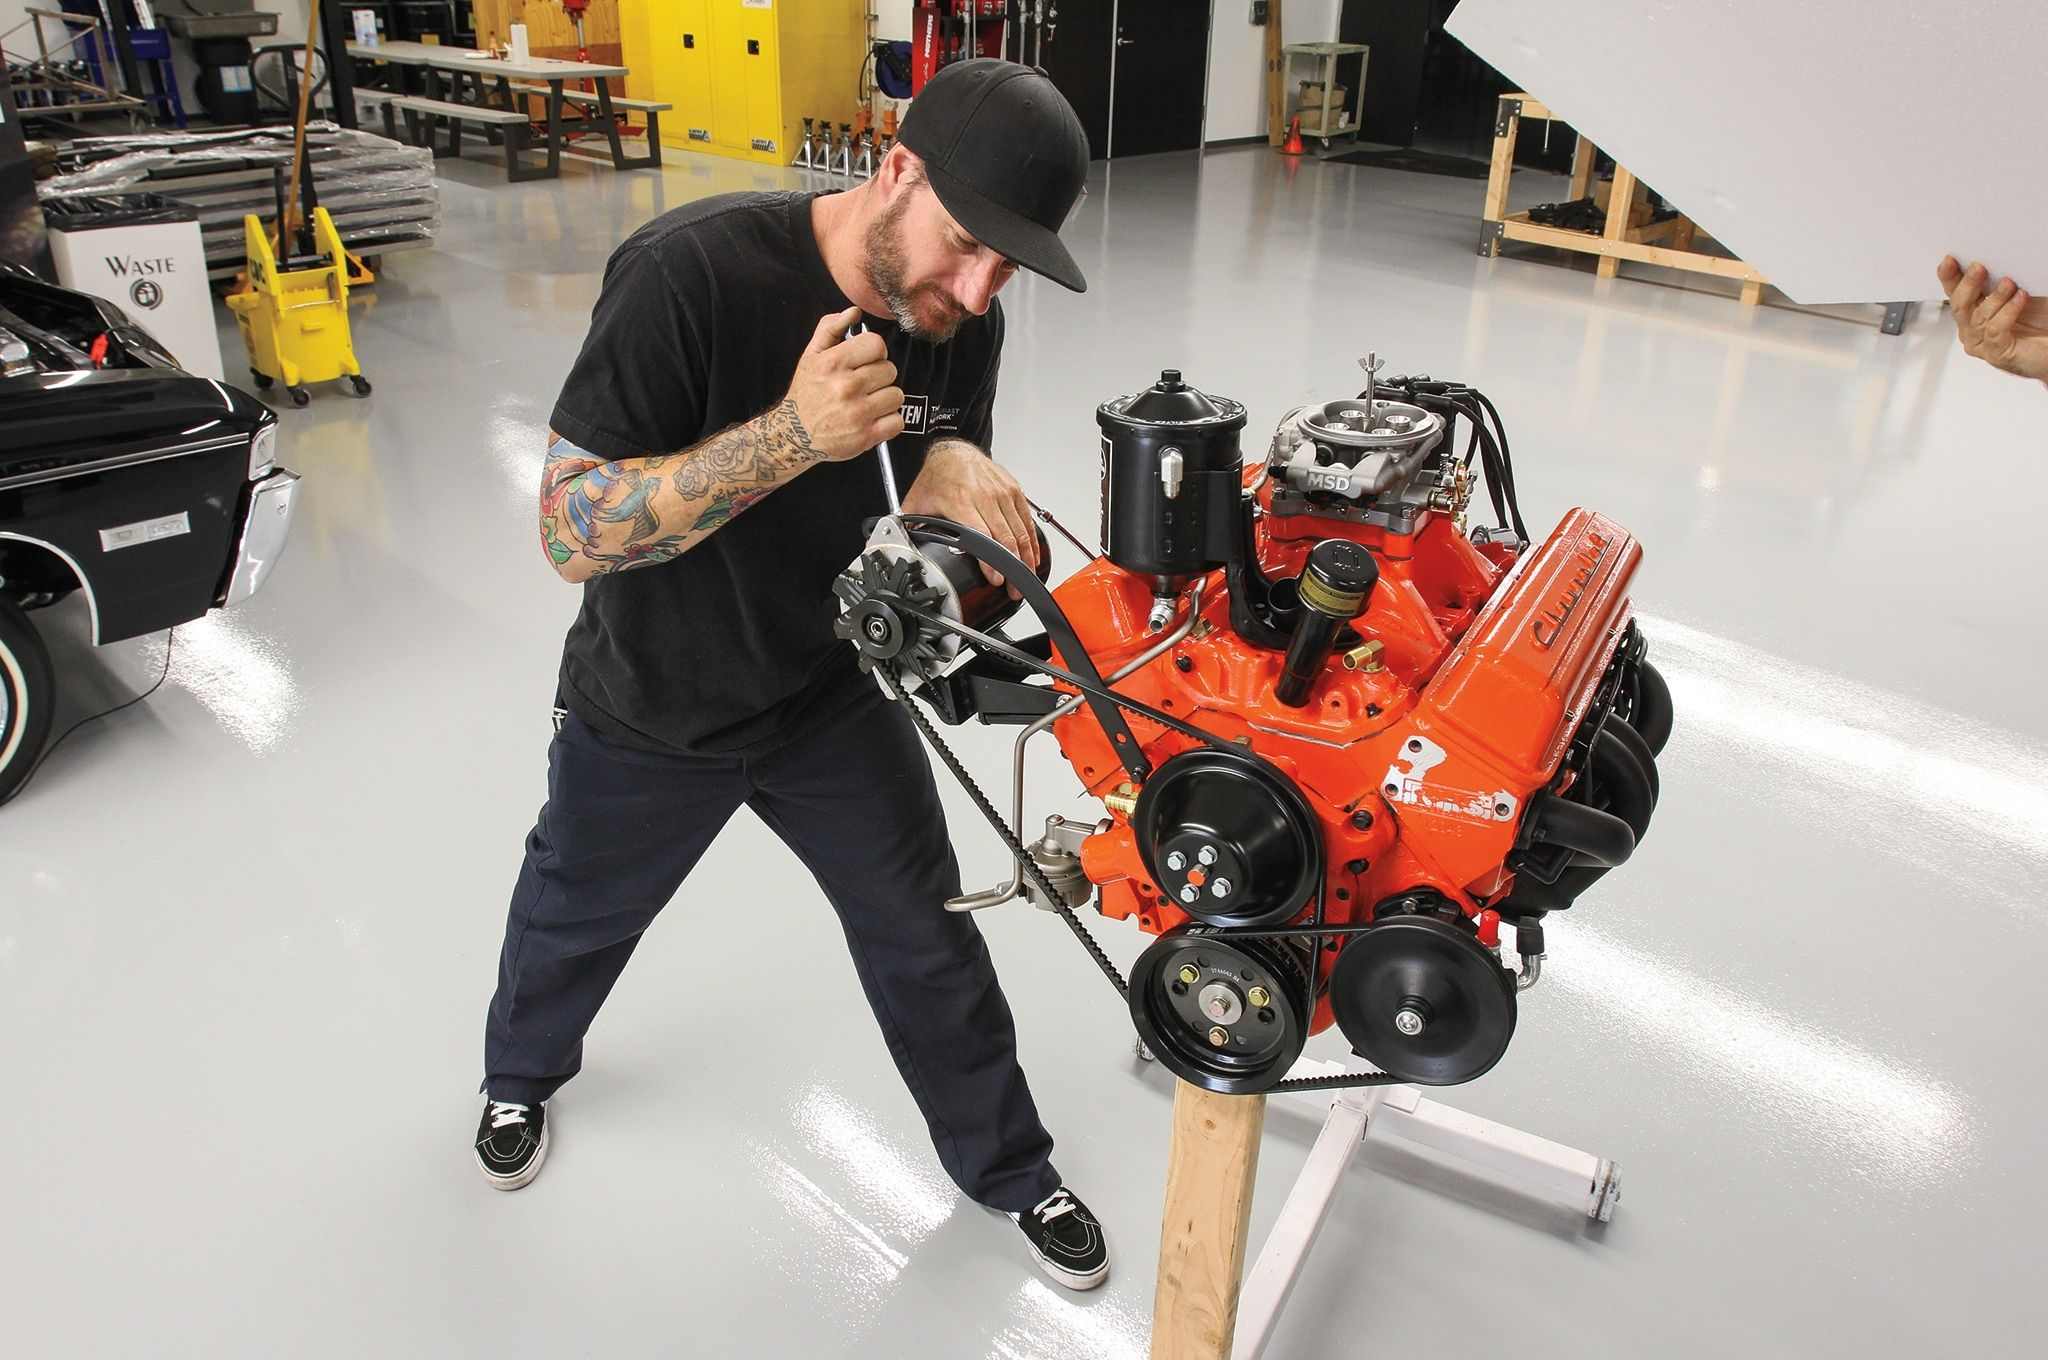 We Re Giving A 383 Small Block Chevrolet Motor A Vintage Look